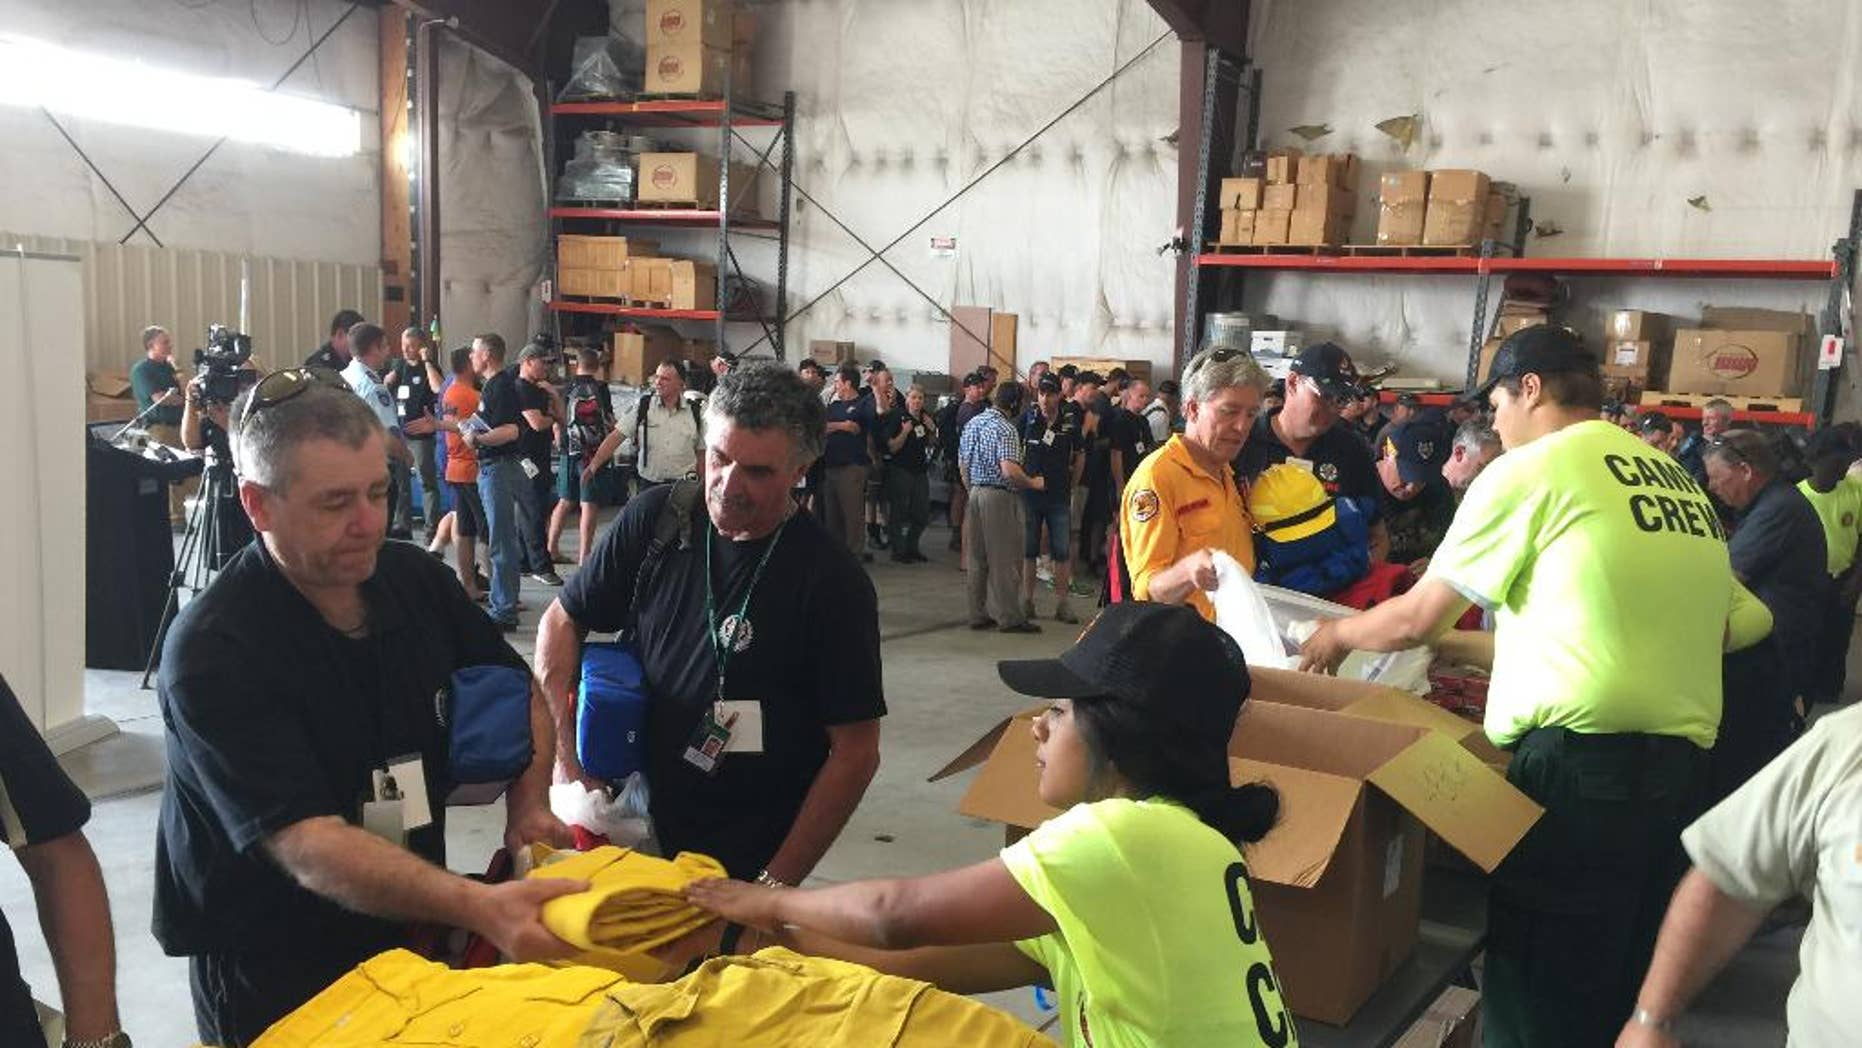 Warren Heslip, 47, of Southland, New Zealand, receives a yellow firefighting shirt on Monday, Aug. 24, 2015 at the National Interagency Fire Center in Boise, Idaho. Australian and New Zealand firefighters have arrived in the United States and prepared to fan out to help fight wildfires burning in several western states. (AP Photo/Keith Ridler)